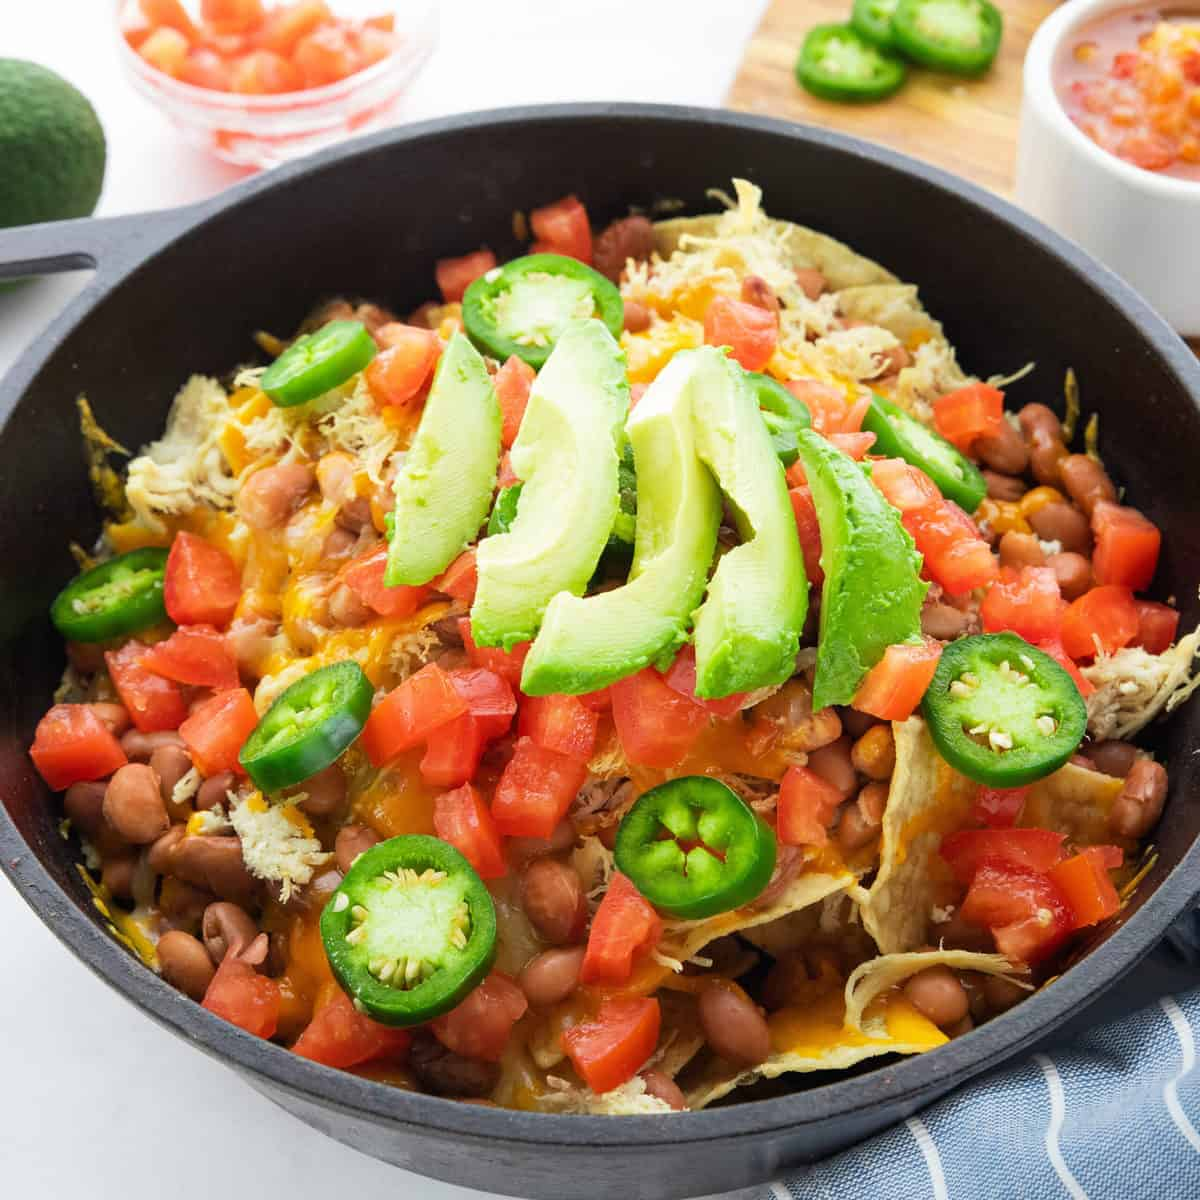 skillet nachos shown in a cast iron skillet with diced tomatoes, jalapeños, beans, and avocados on top.